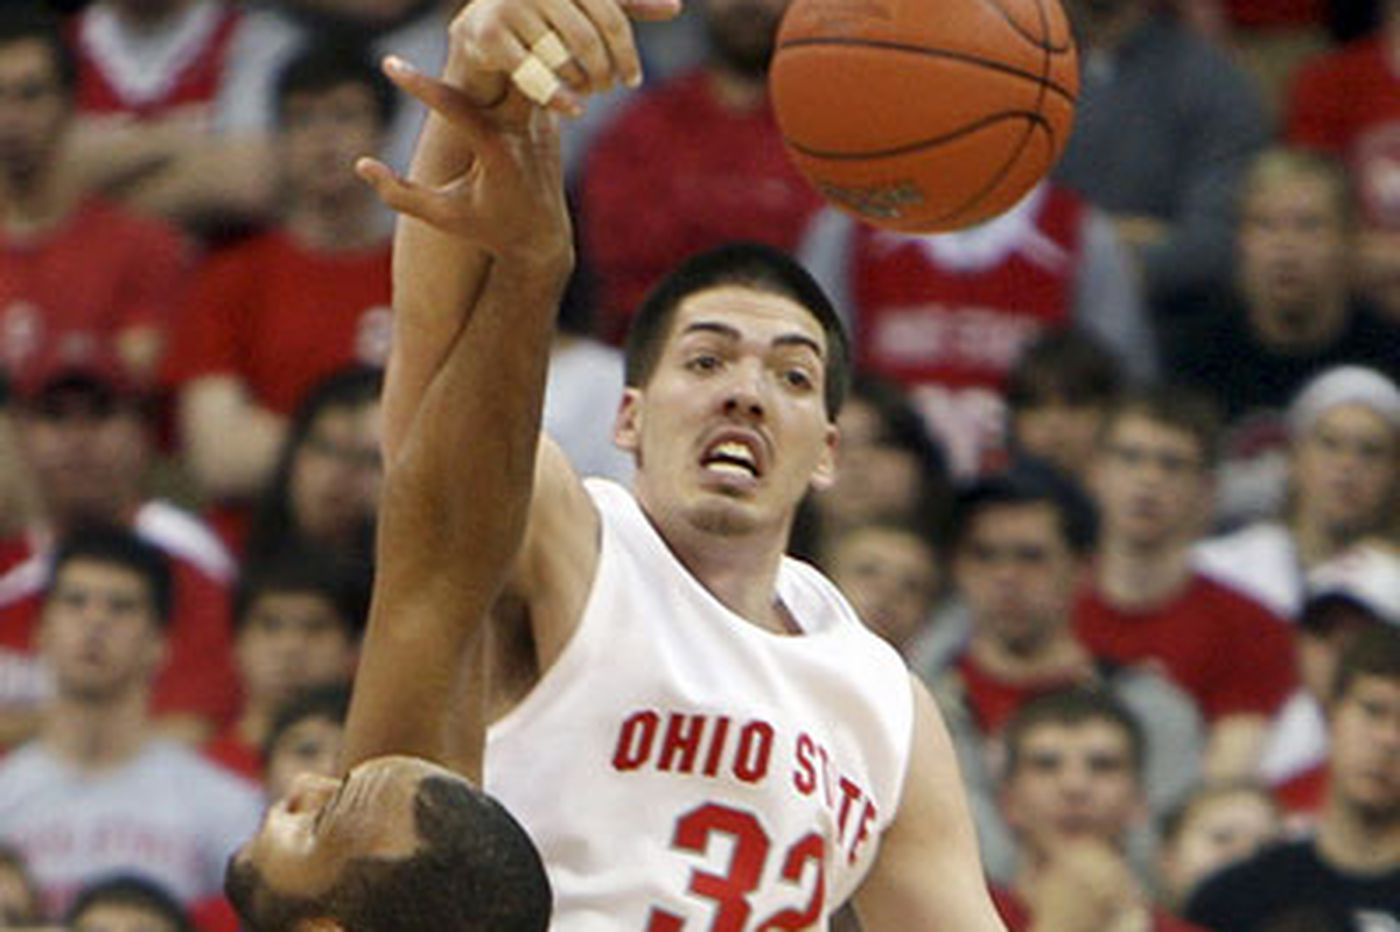 76ers to work out Ohio State's Mullens, Notre Dame's Ayers